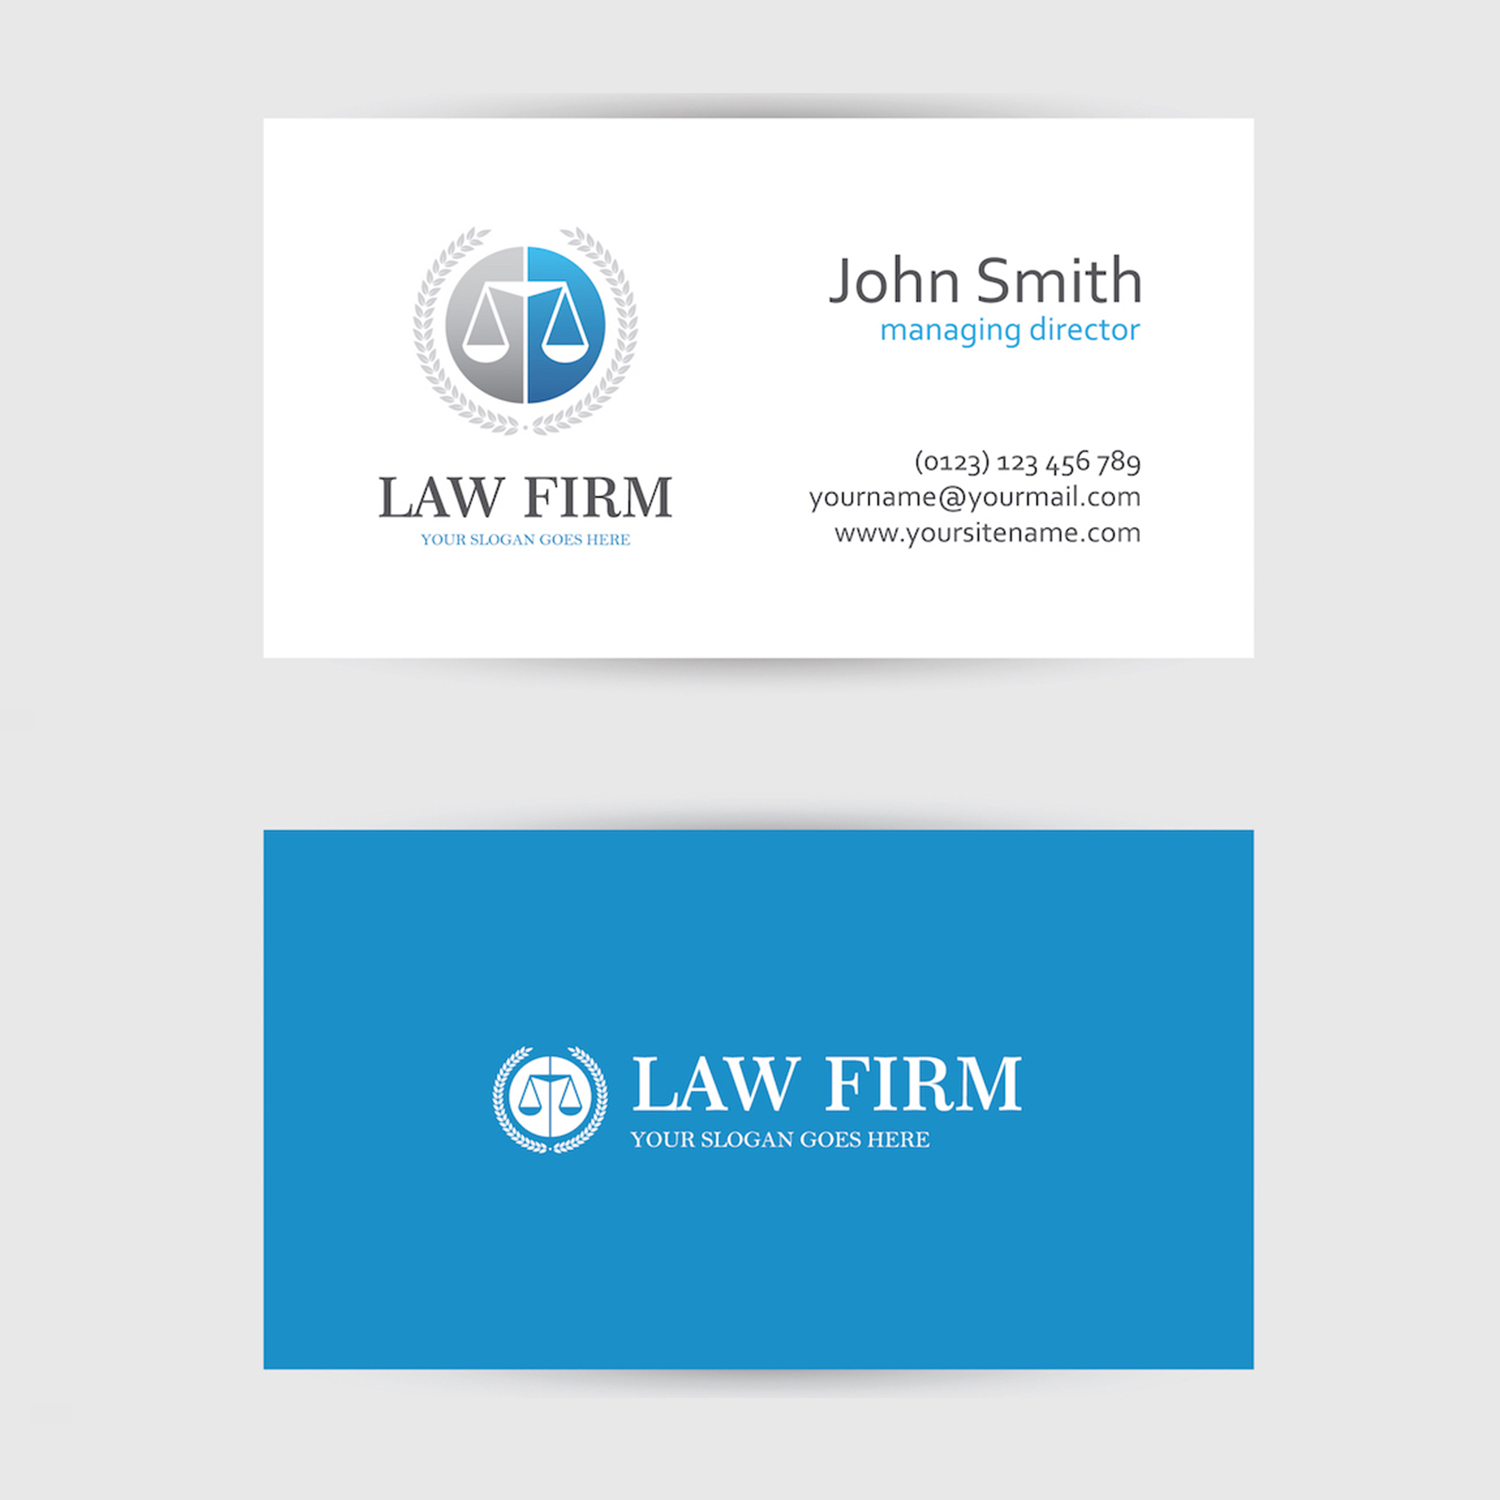 Law firm business card design branding los angeles law firm business card design reheart Gallery